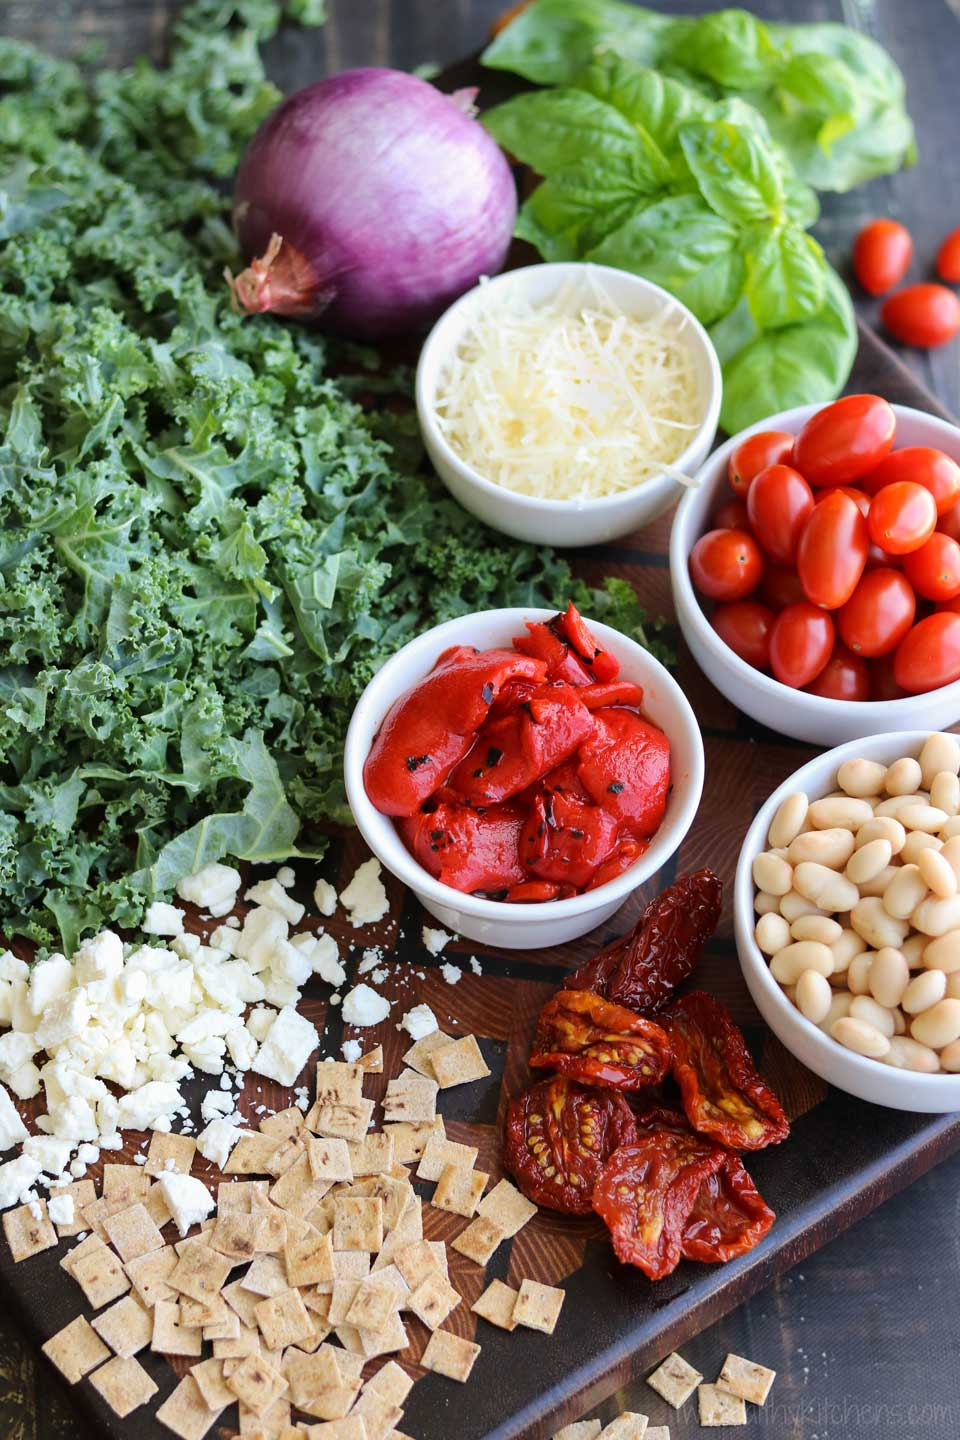 Besides nutritious kale, this salad features two kinds of tomatoes and two kinds of cheese, plus roasted red peppers, fresh basil, red onions, cannellini beans, and a wonderfully simple honey-balsamic dressing!